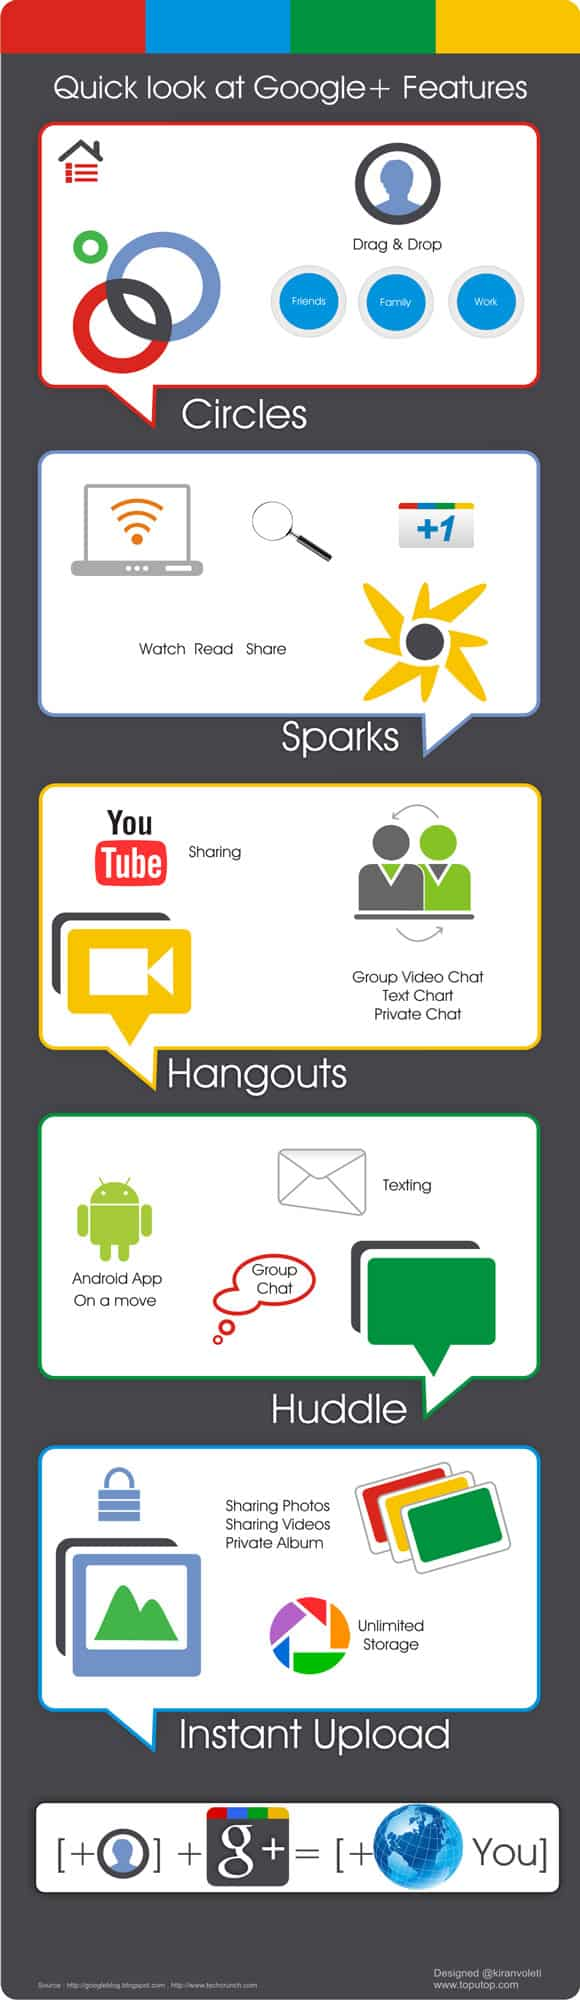 googleplus features 5 Must Read Google+ Infographics